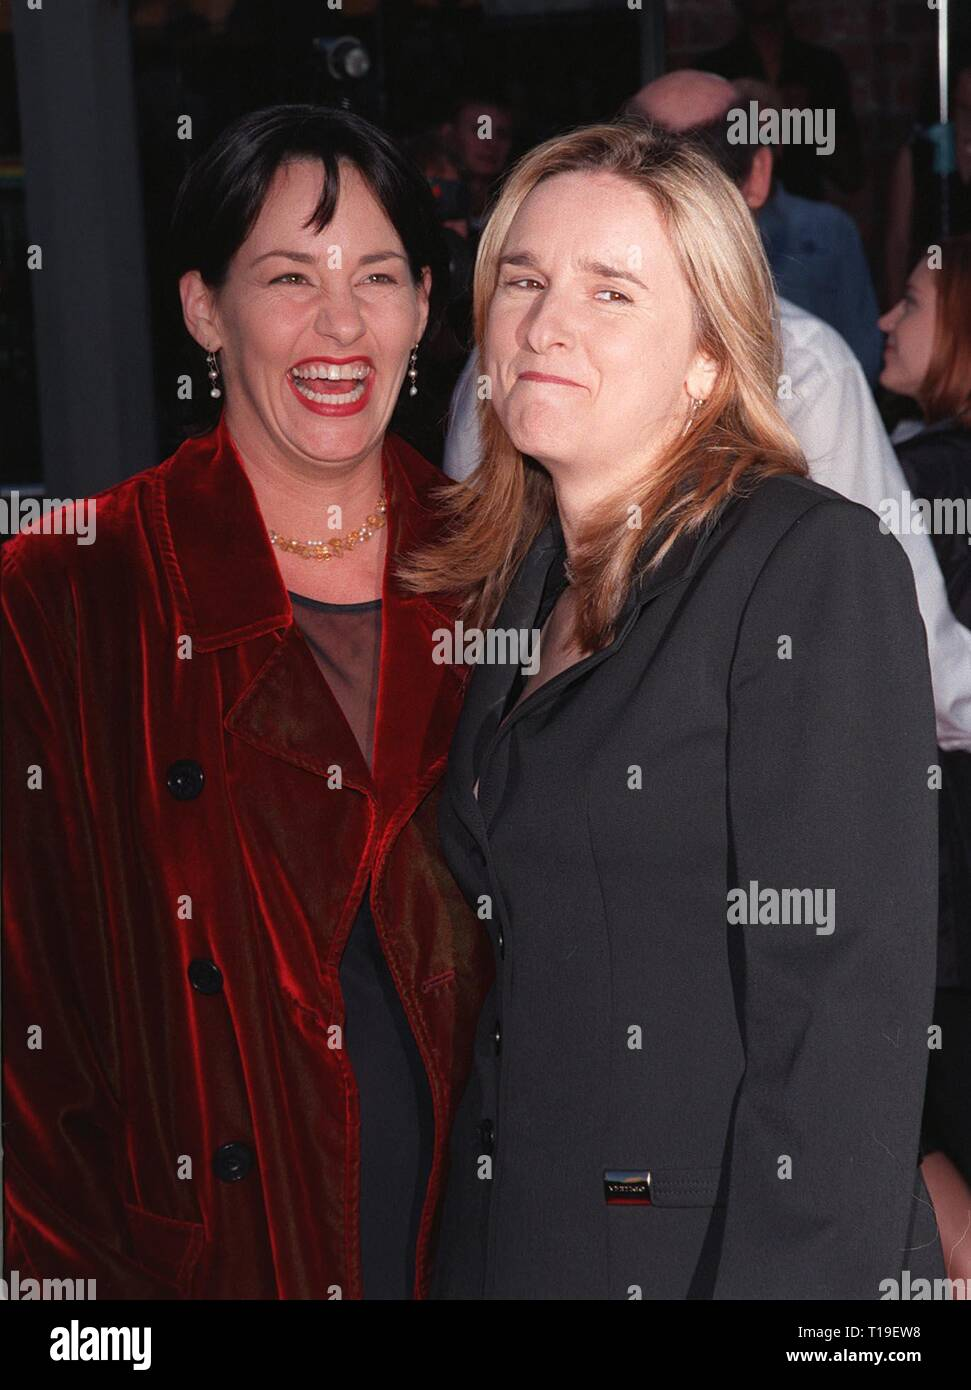 LOS ANGELES, CA - September 8, 2011:  Singer MELISSA ETHERIDGE (right) & girlfriend JULIE CYPHER at the world premiere, in Los Angeles, of 'The X-Files.' - Stock Image